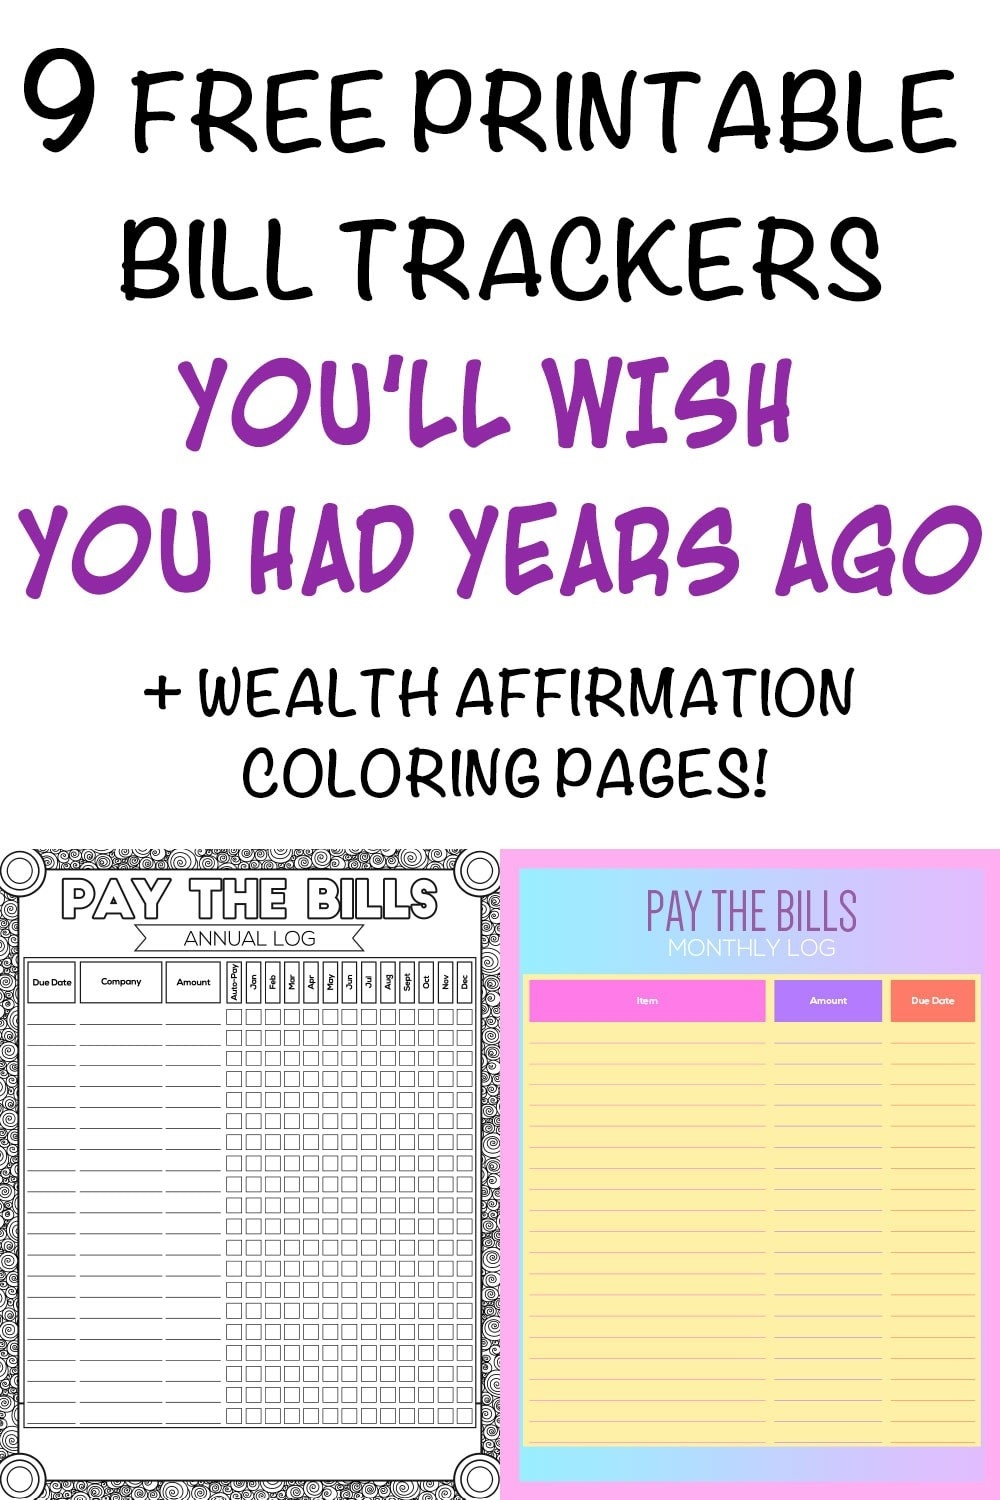 9 Printable Bill Payment Checklists And Bill Trackers - The Artisan Life  Monthly Bill Bill Checklist With Confirmation Number Column